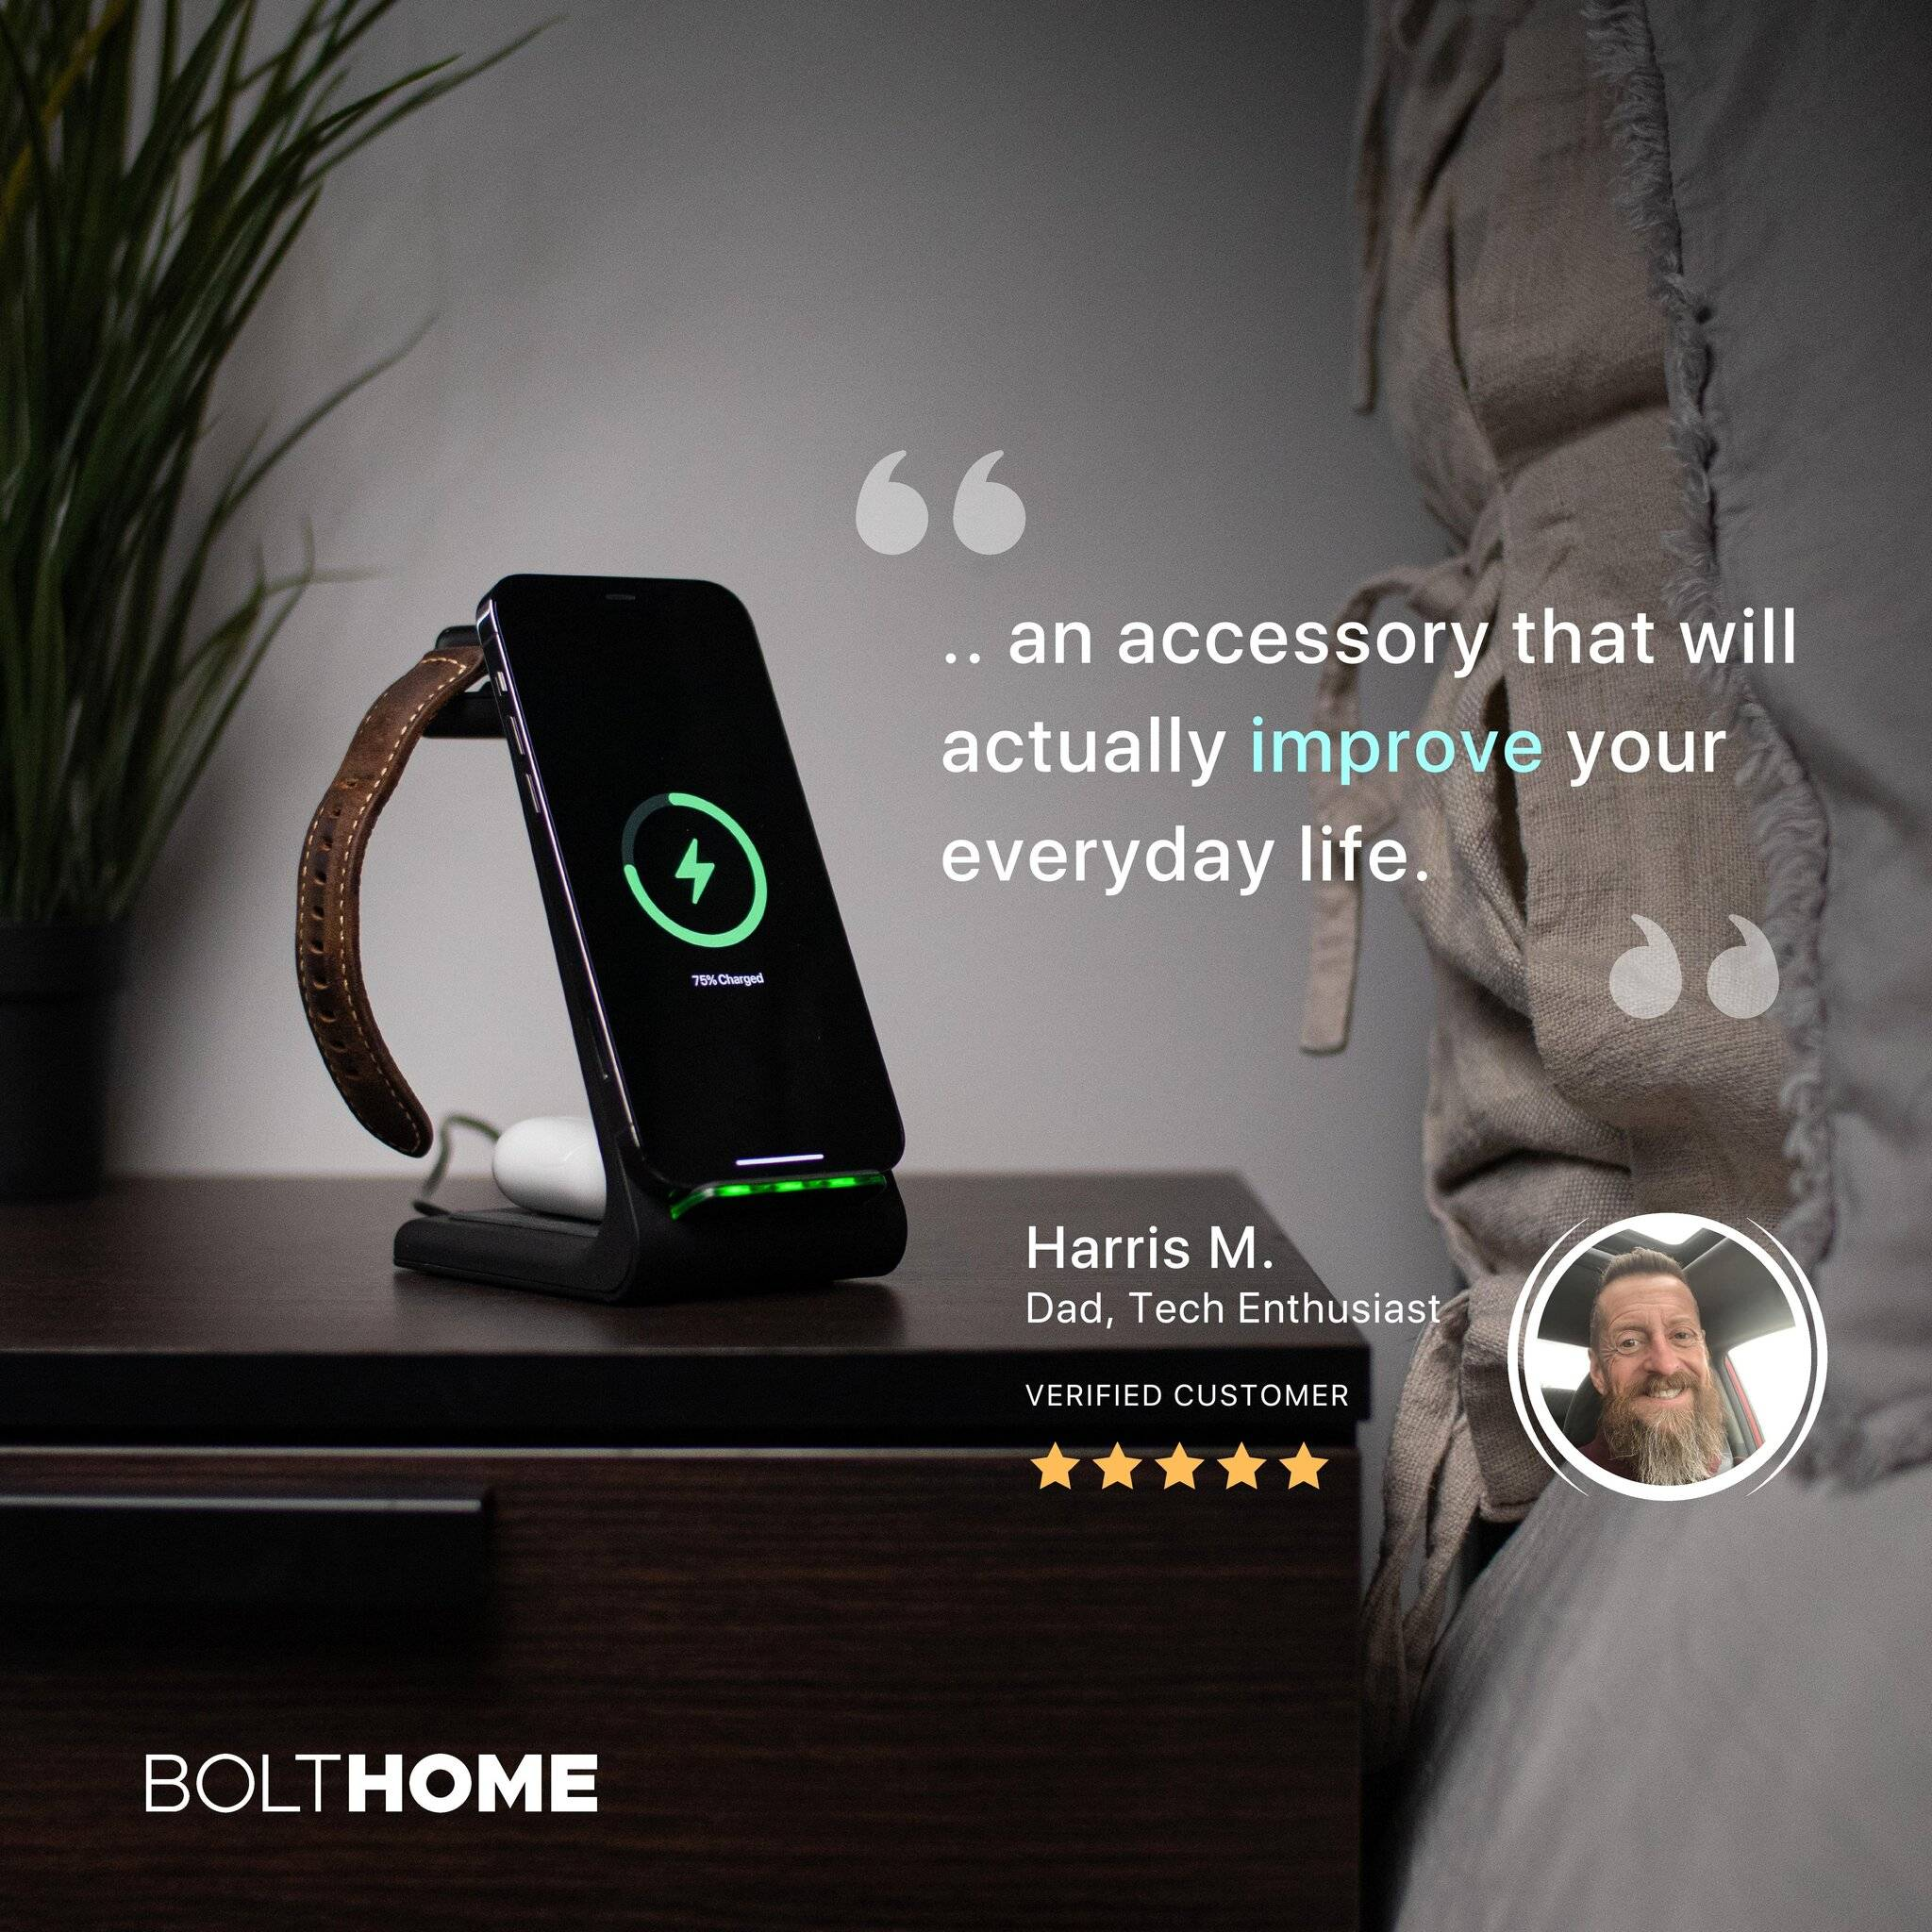 bolthome on bedside nightstand with customer review